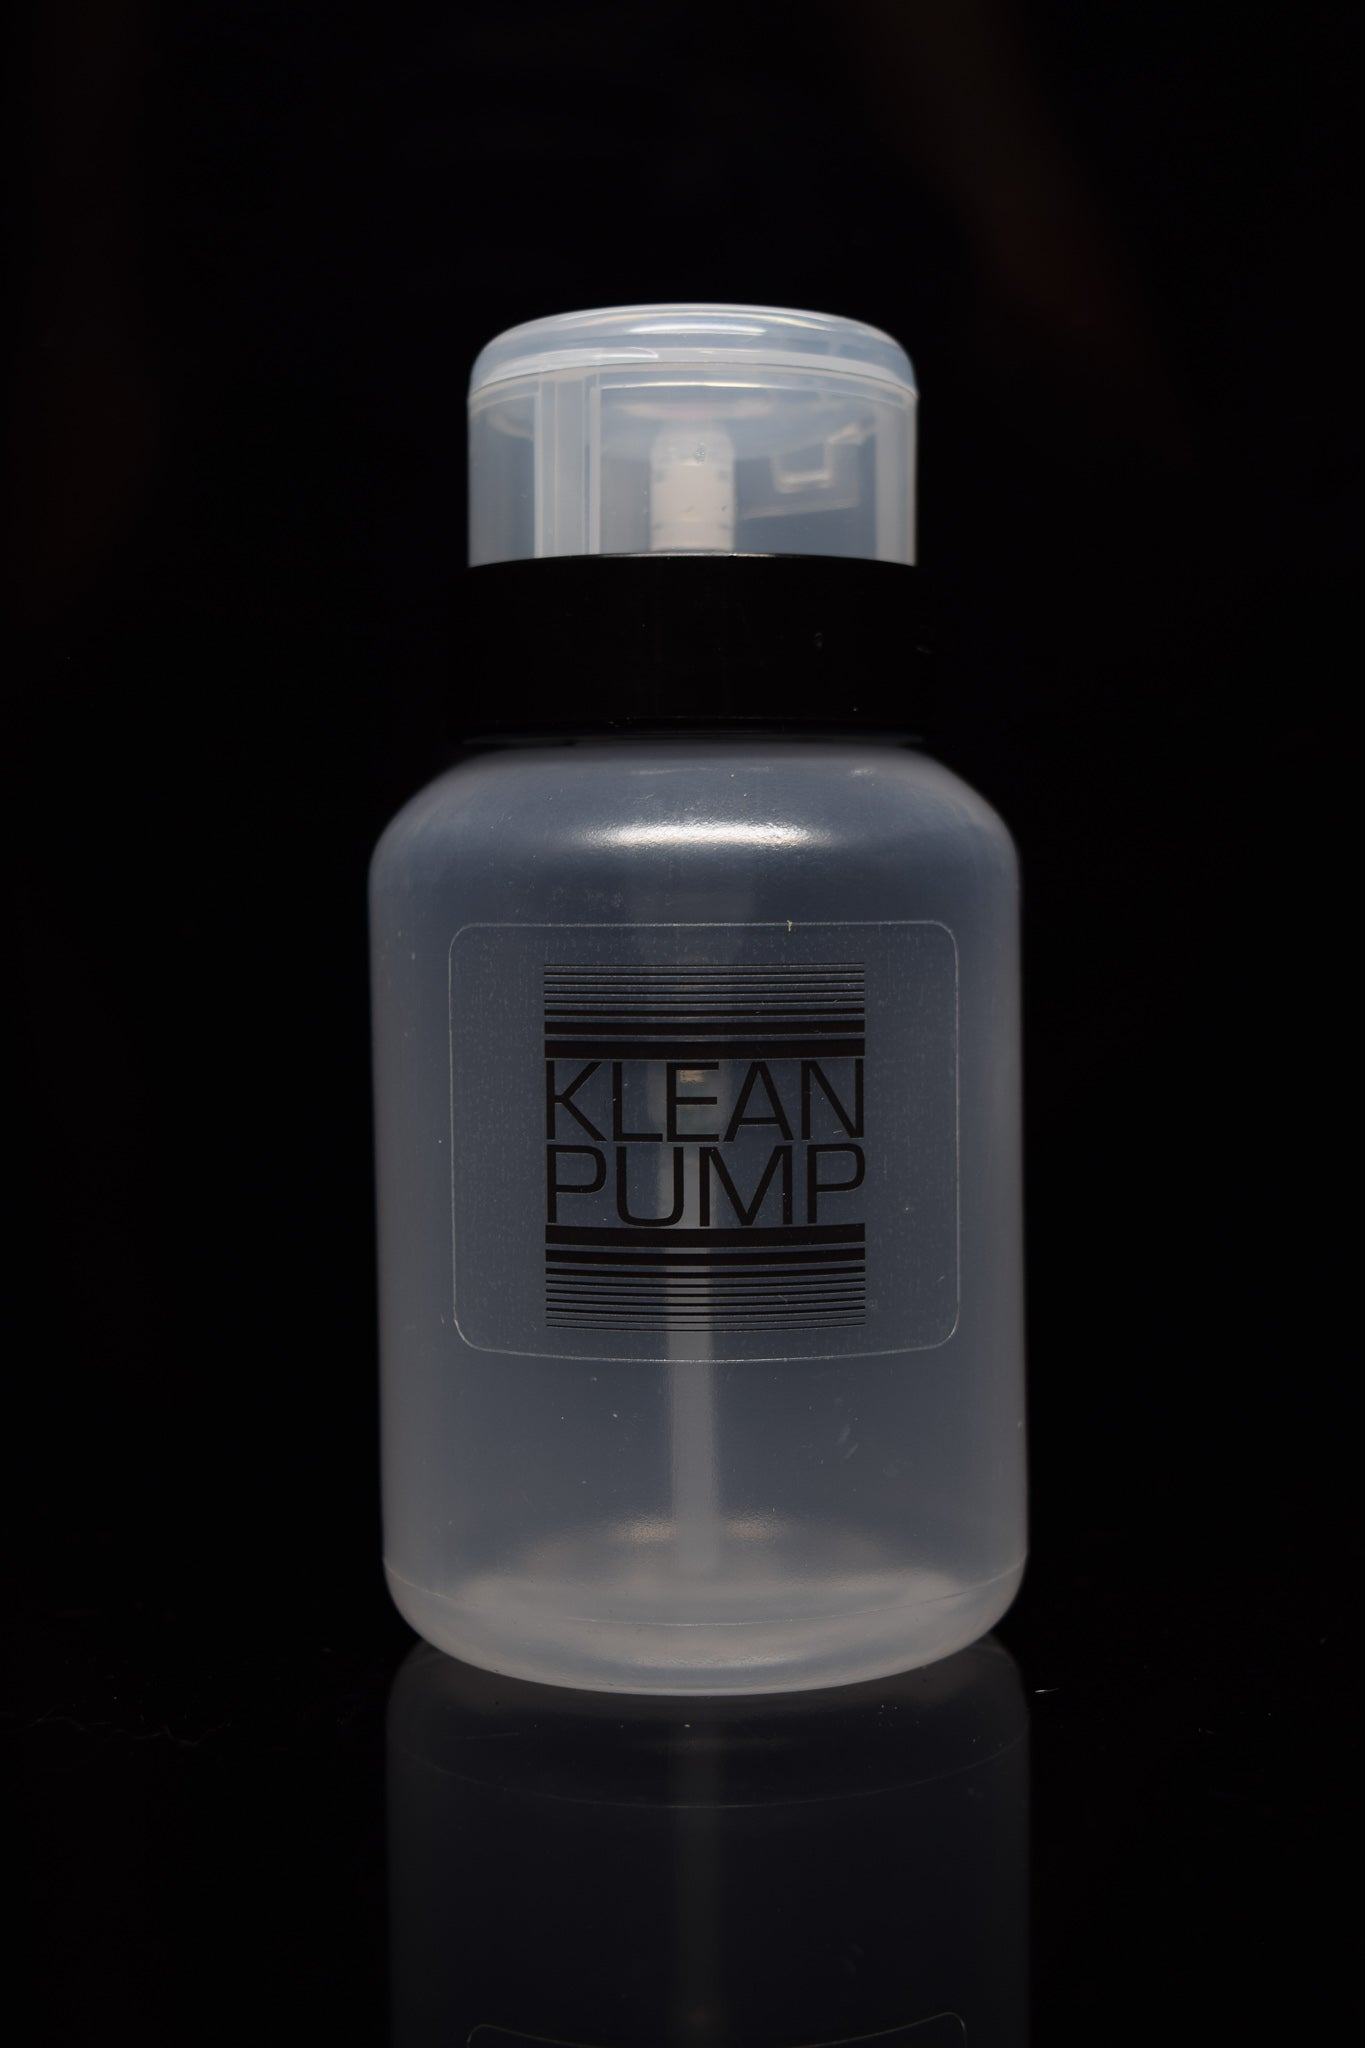 Klean Pump V1 7oz Travel Bottle